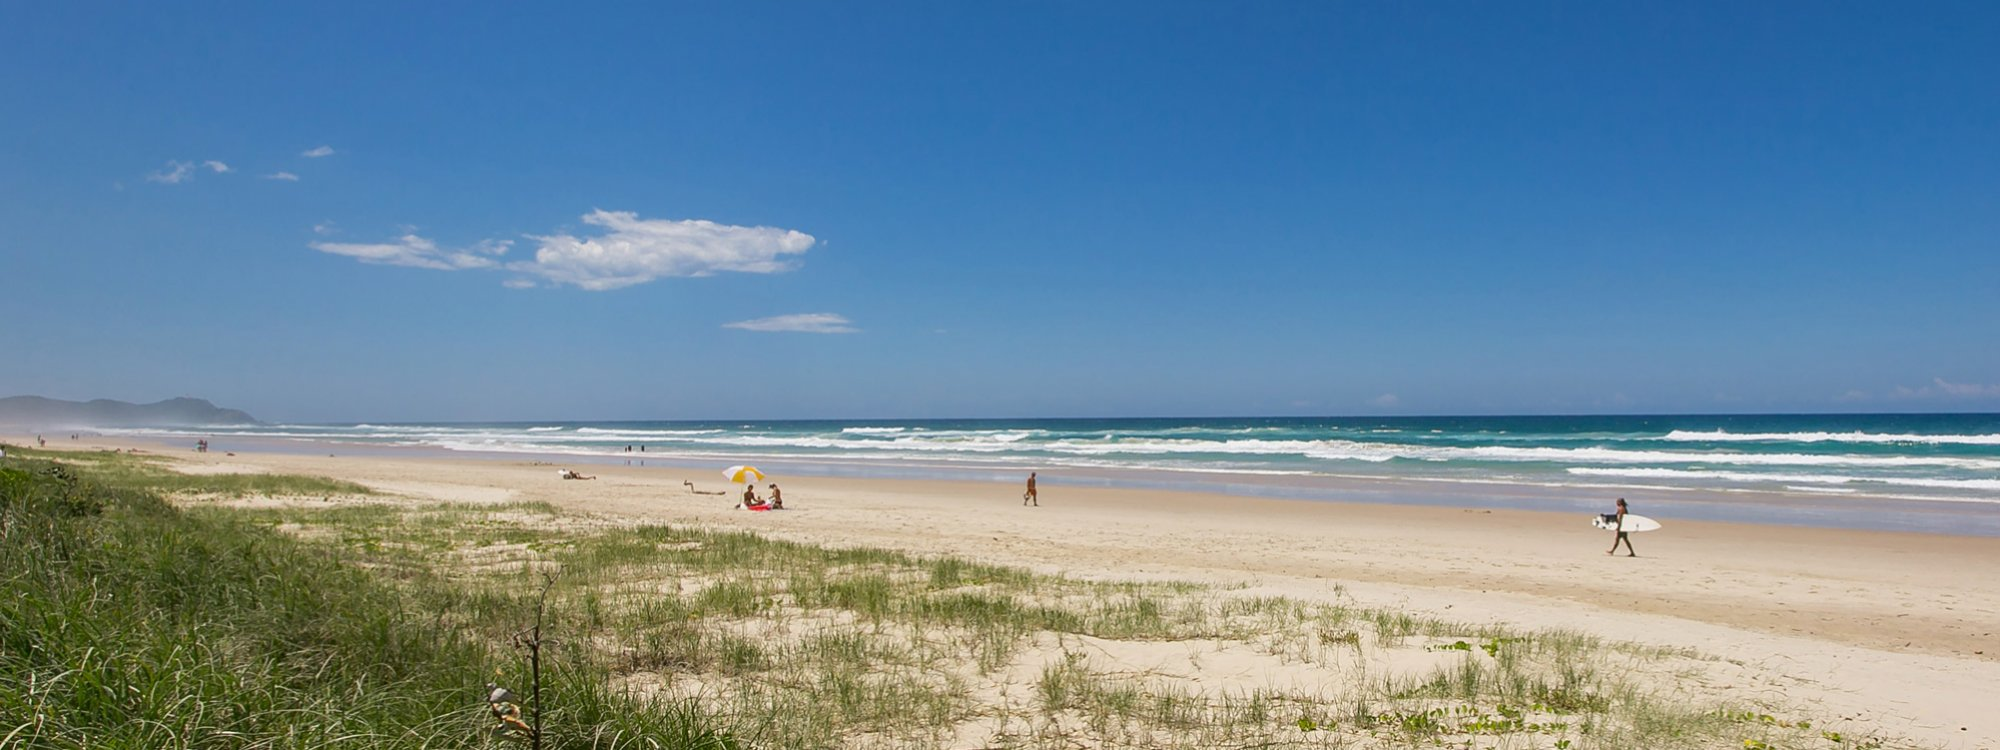 Beachwood - Byron Bay - Beach Towards Cape Byron